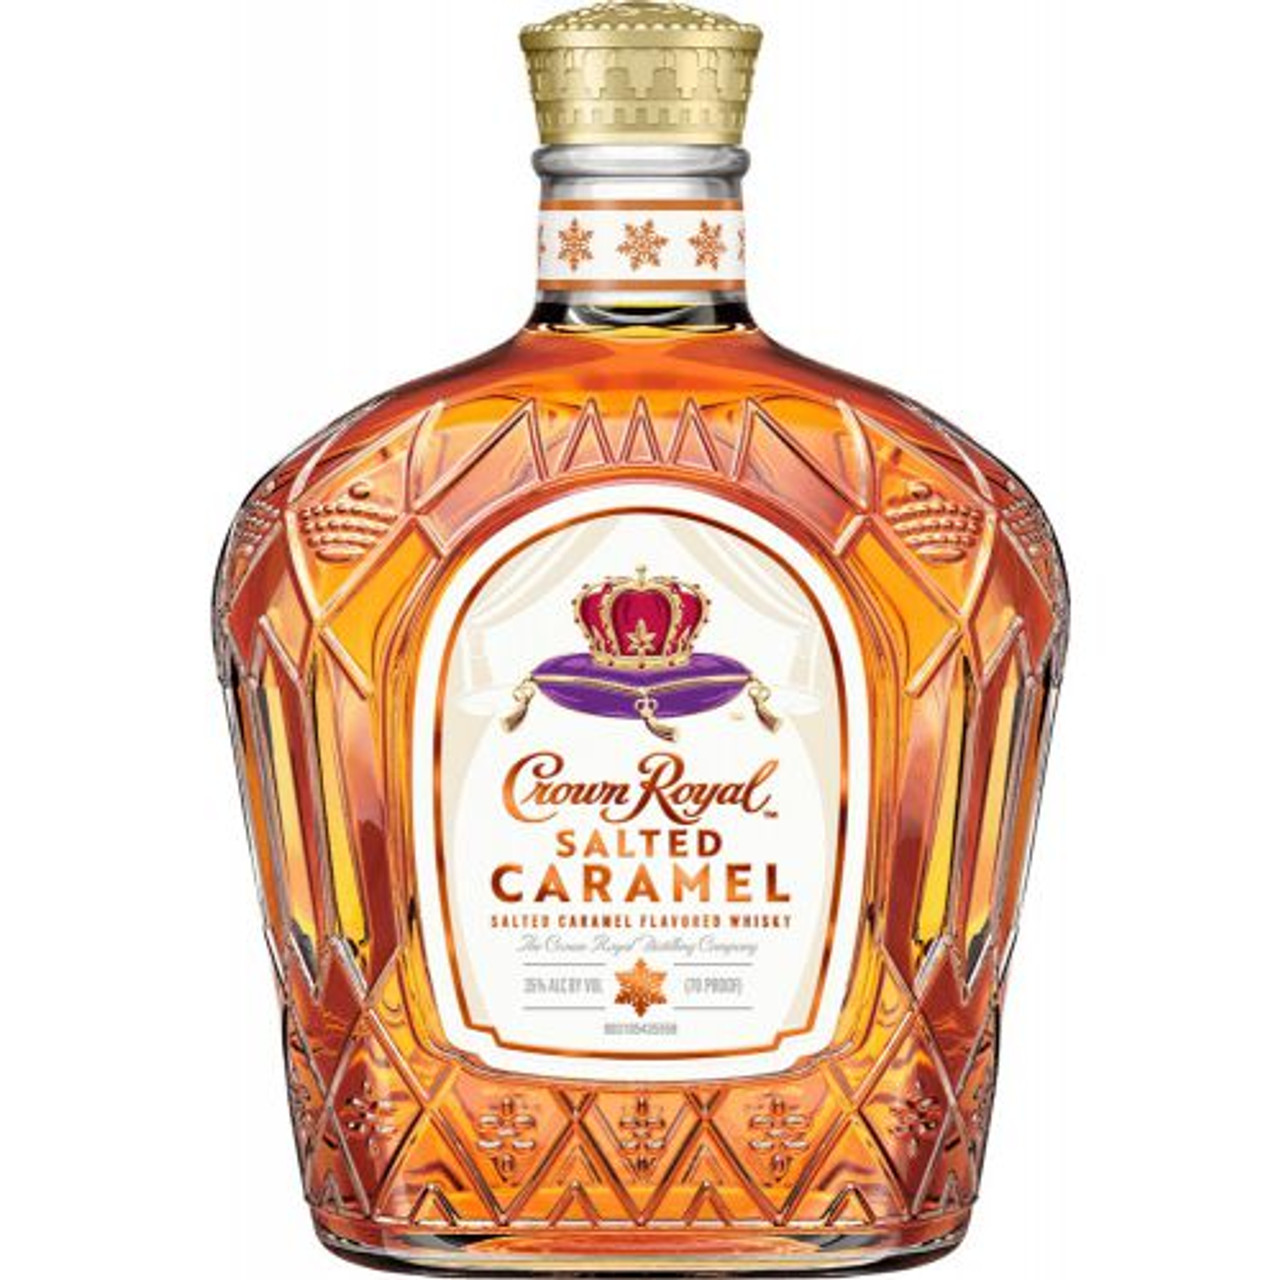 A blend of the finest Canadian whiskies, carefully selected by our Master Blenders and infused with the subtly salty-sweet taste of indulgent salted caramels – imparting lush, creamy notes that perfectly compliment the richness of Crown Royal Whisky